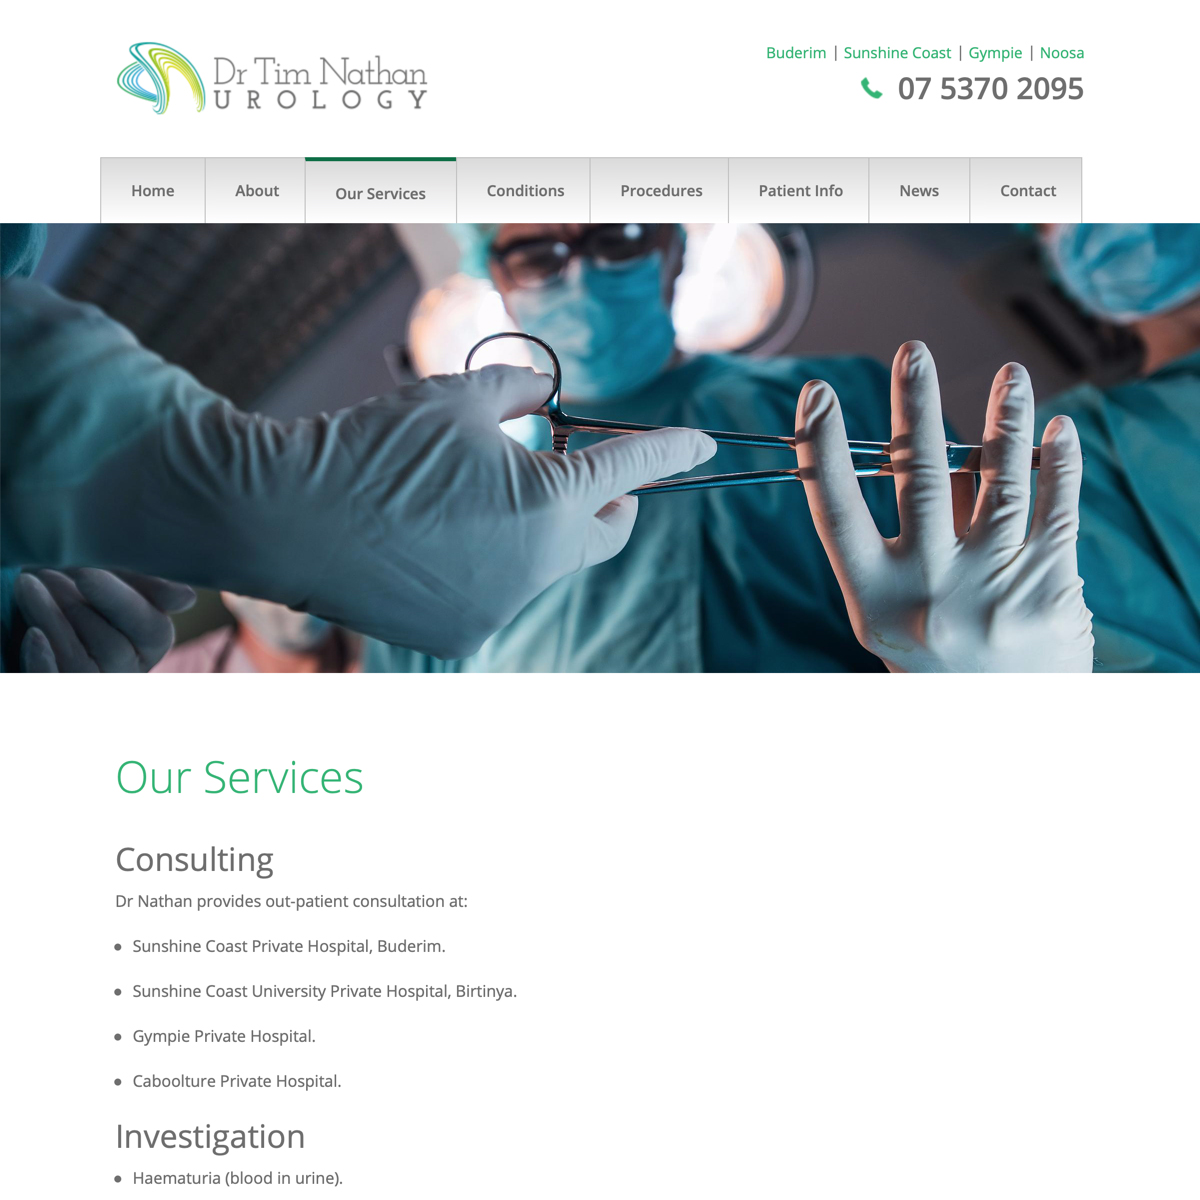 Dr Tim Nathan Urology - Our Services